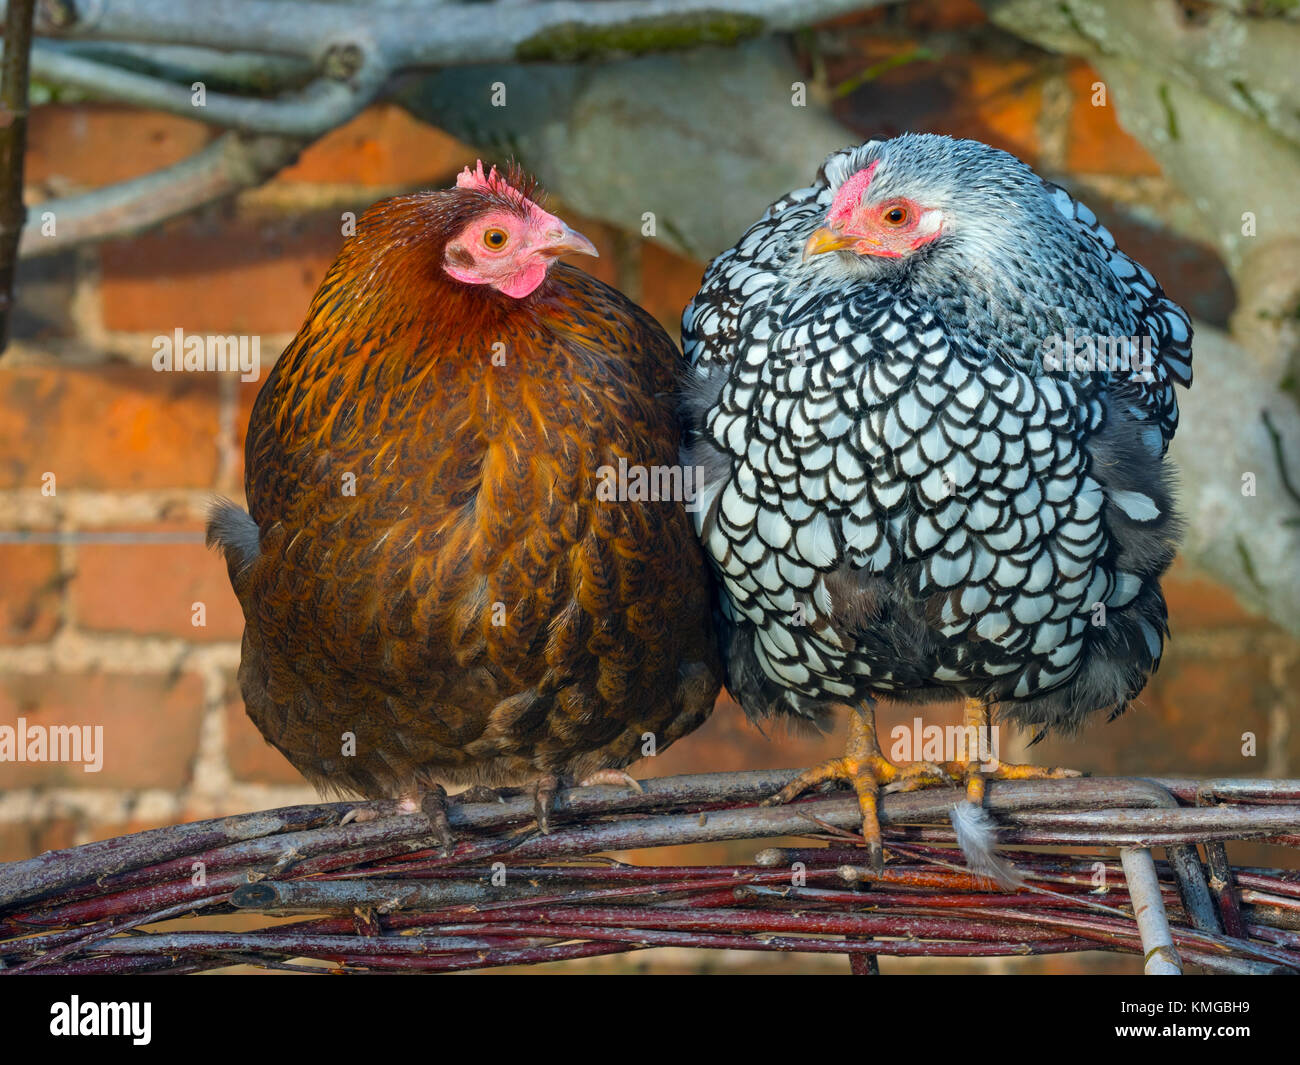 Silver-laced Wyandotte free range in garden with hybrid brown hens - Stock Image